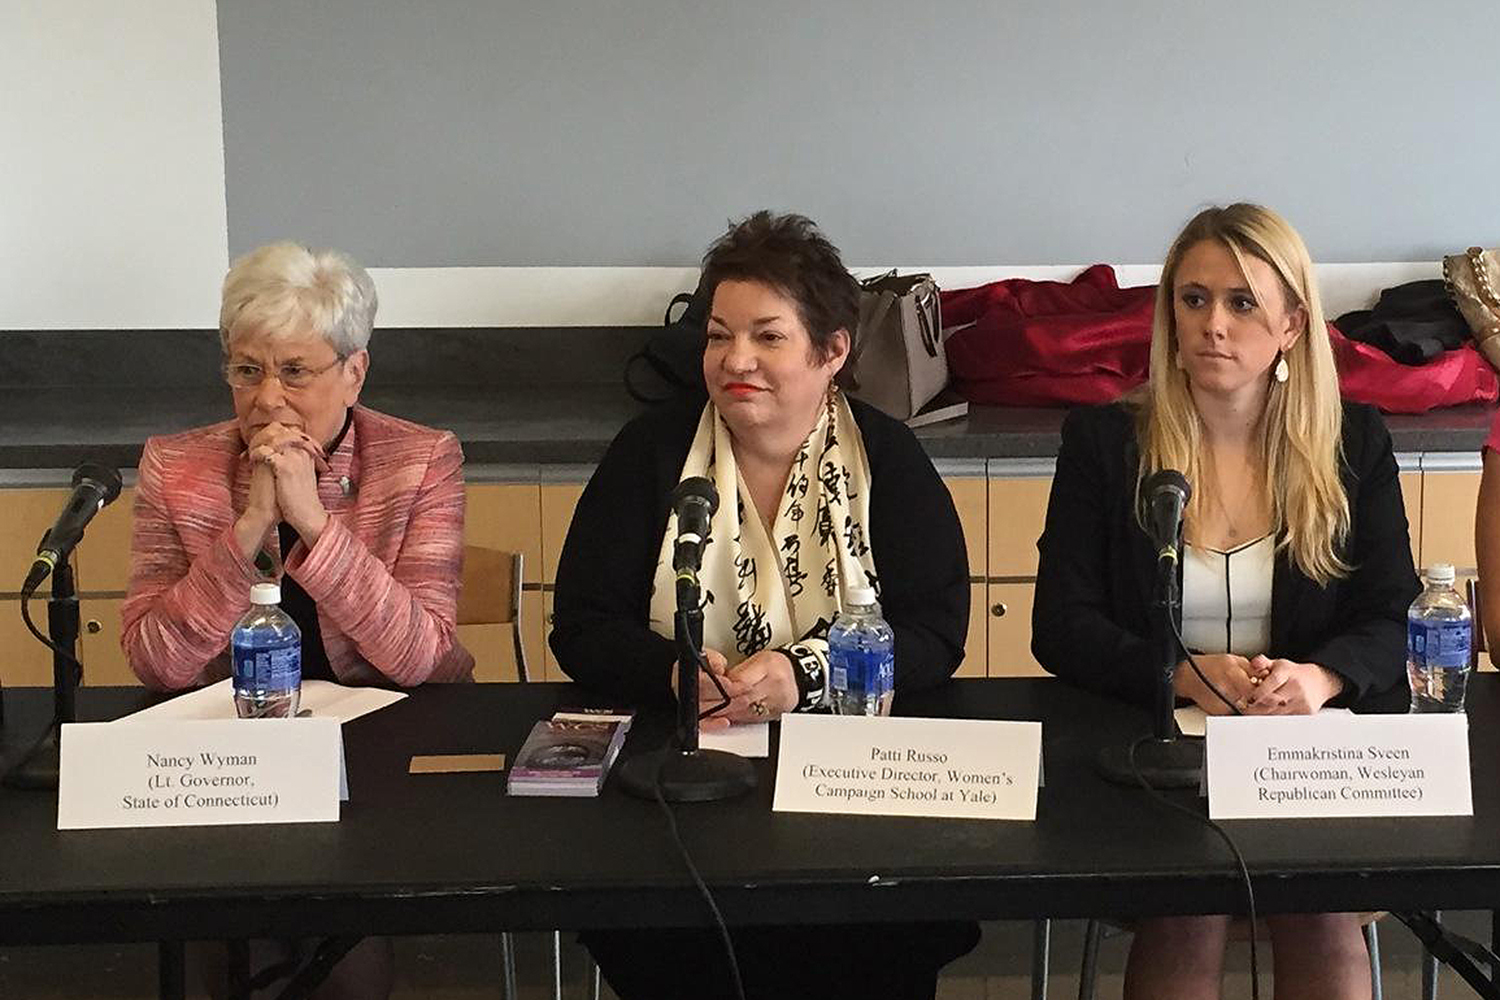 Sveen joined Leutenant Governor Nancy Wyman, Executive Director of the Women's Campaign School at Yale Patti Russo, and Connecticut House Minority Leader Themis Klarides (not pictured) on the panel, speaking about the role of women in politics today.